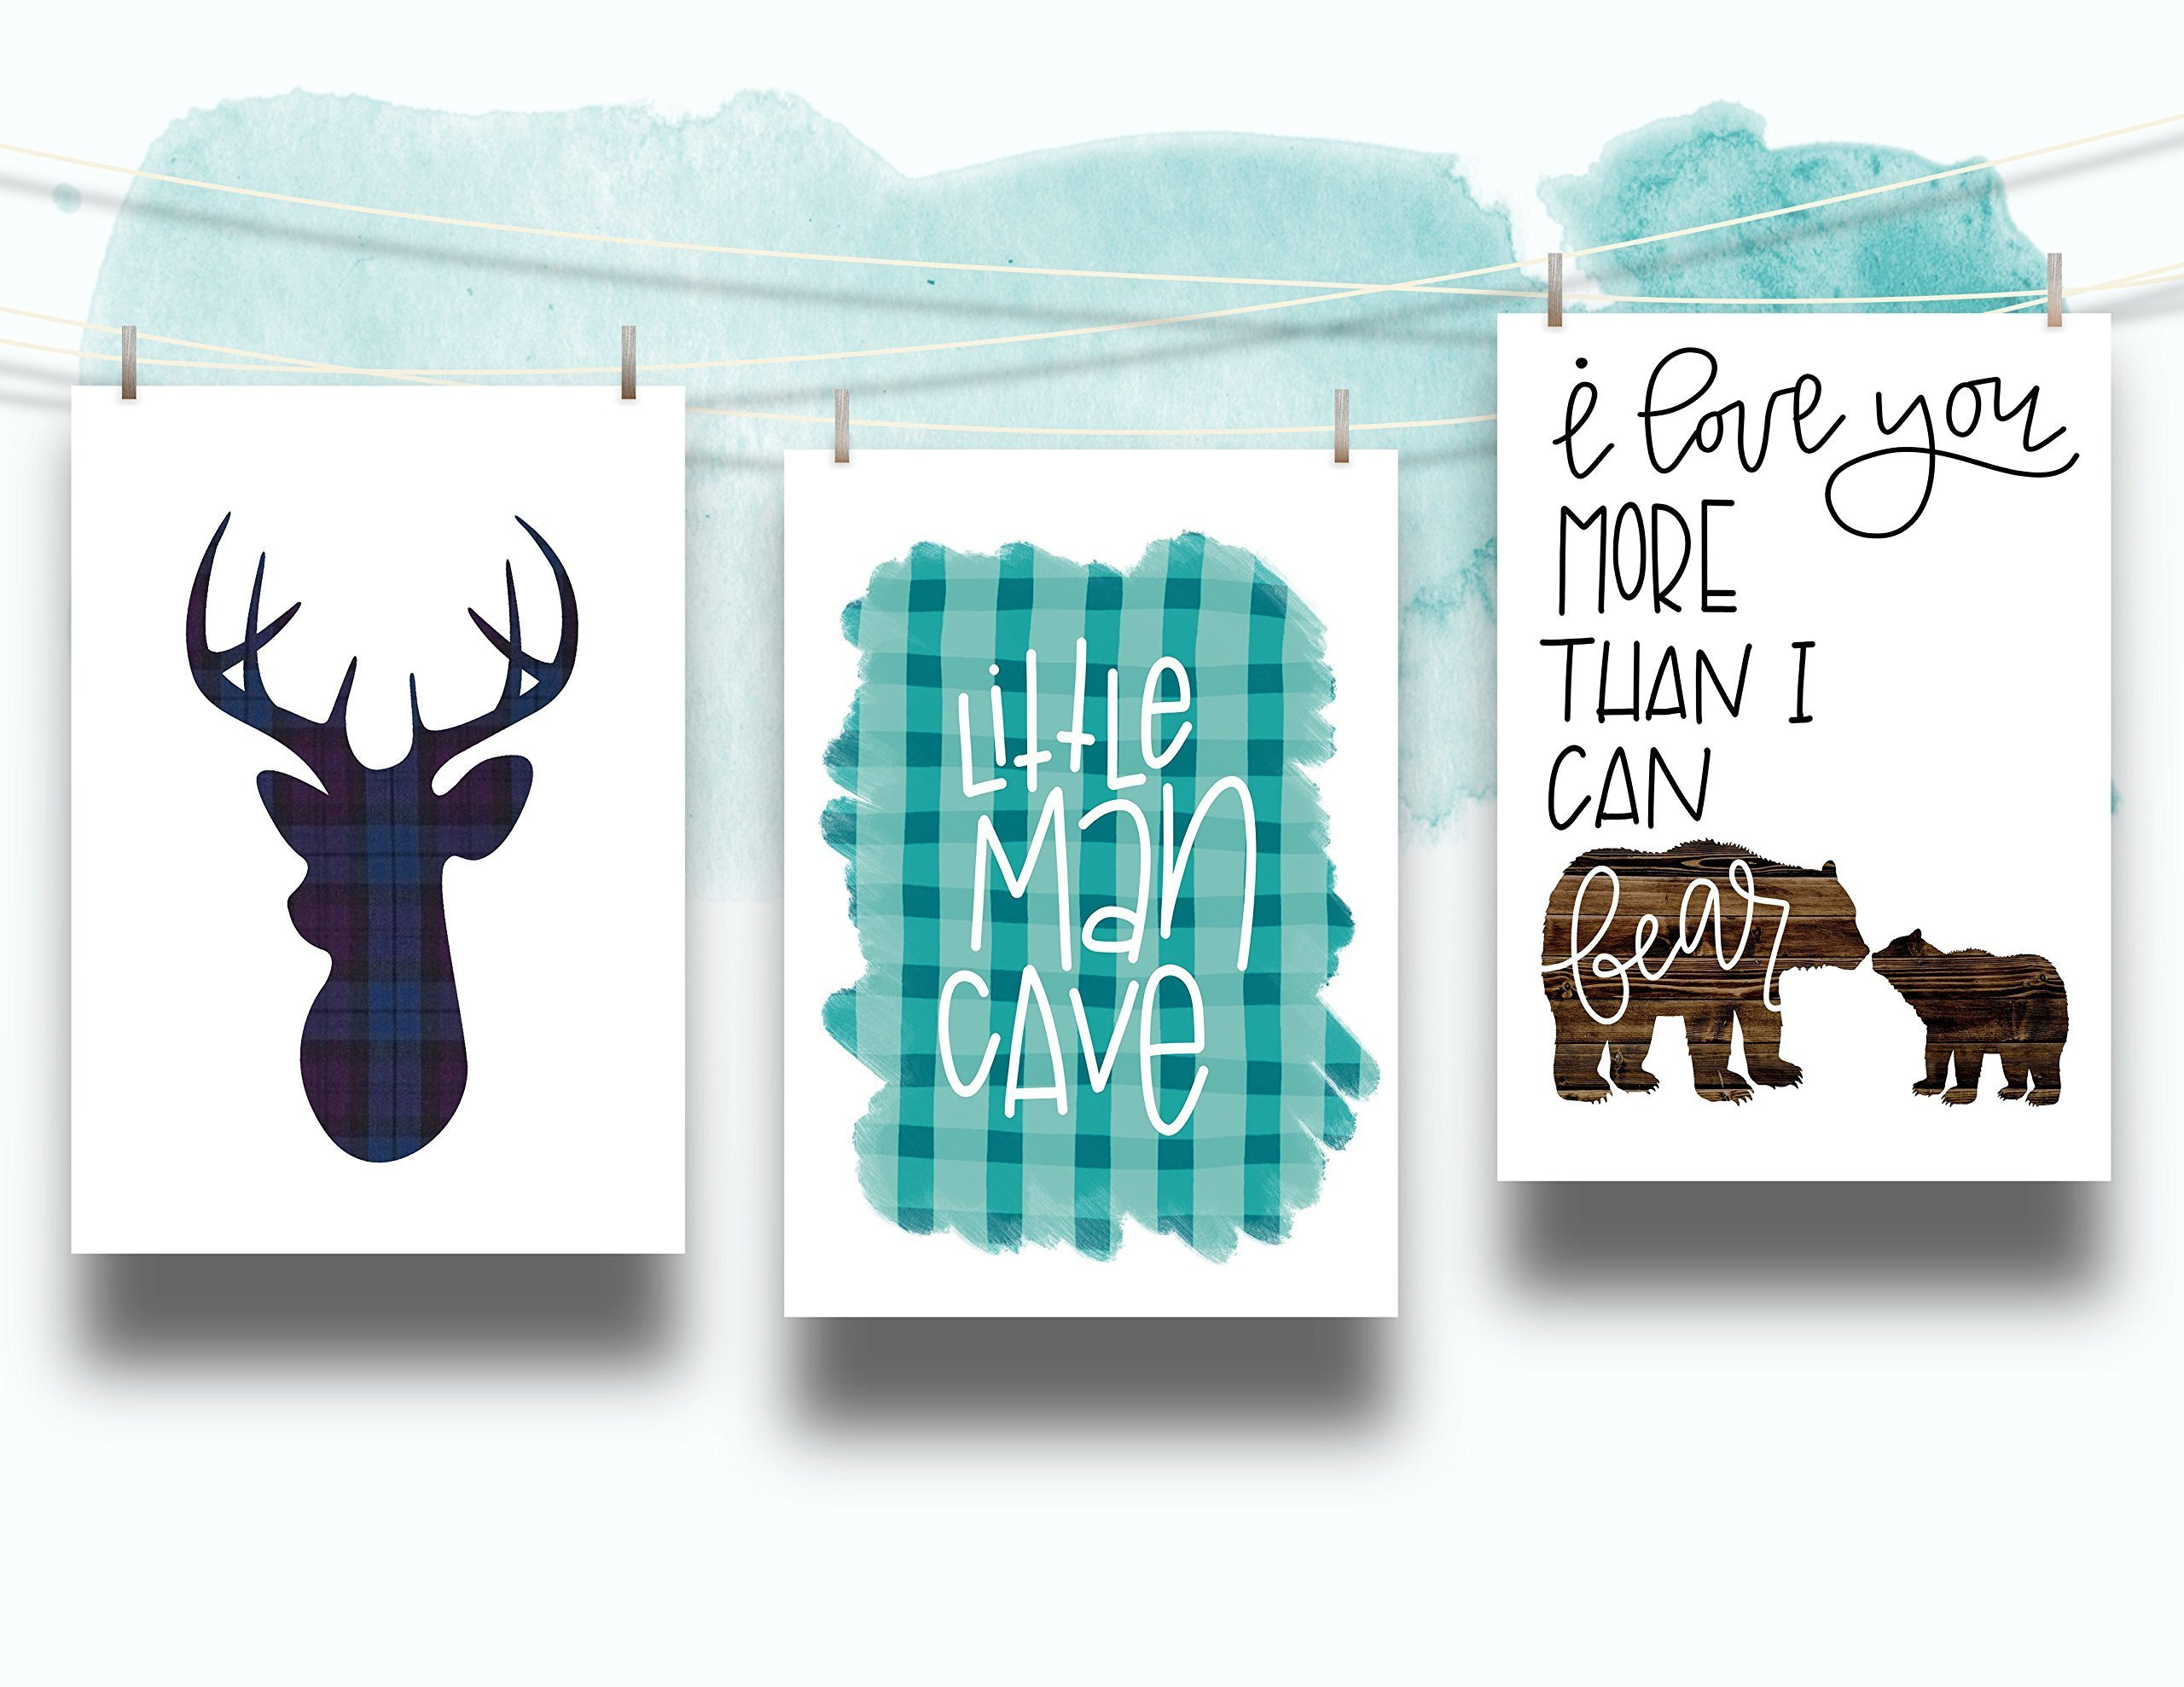 Set of 3 Woodland Animal Nursery Cardstock Prints - 8.5 x11'' Navy Teal Little Man Cave, Buffalo Plaid Deer Silhouette, I Love You More Than I Can Bear by June & Lucy